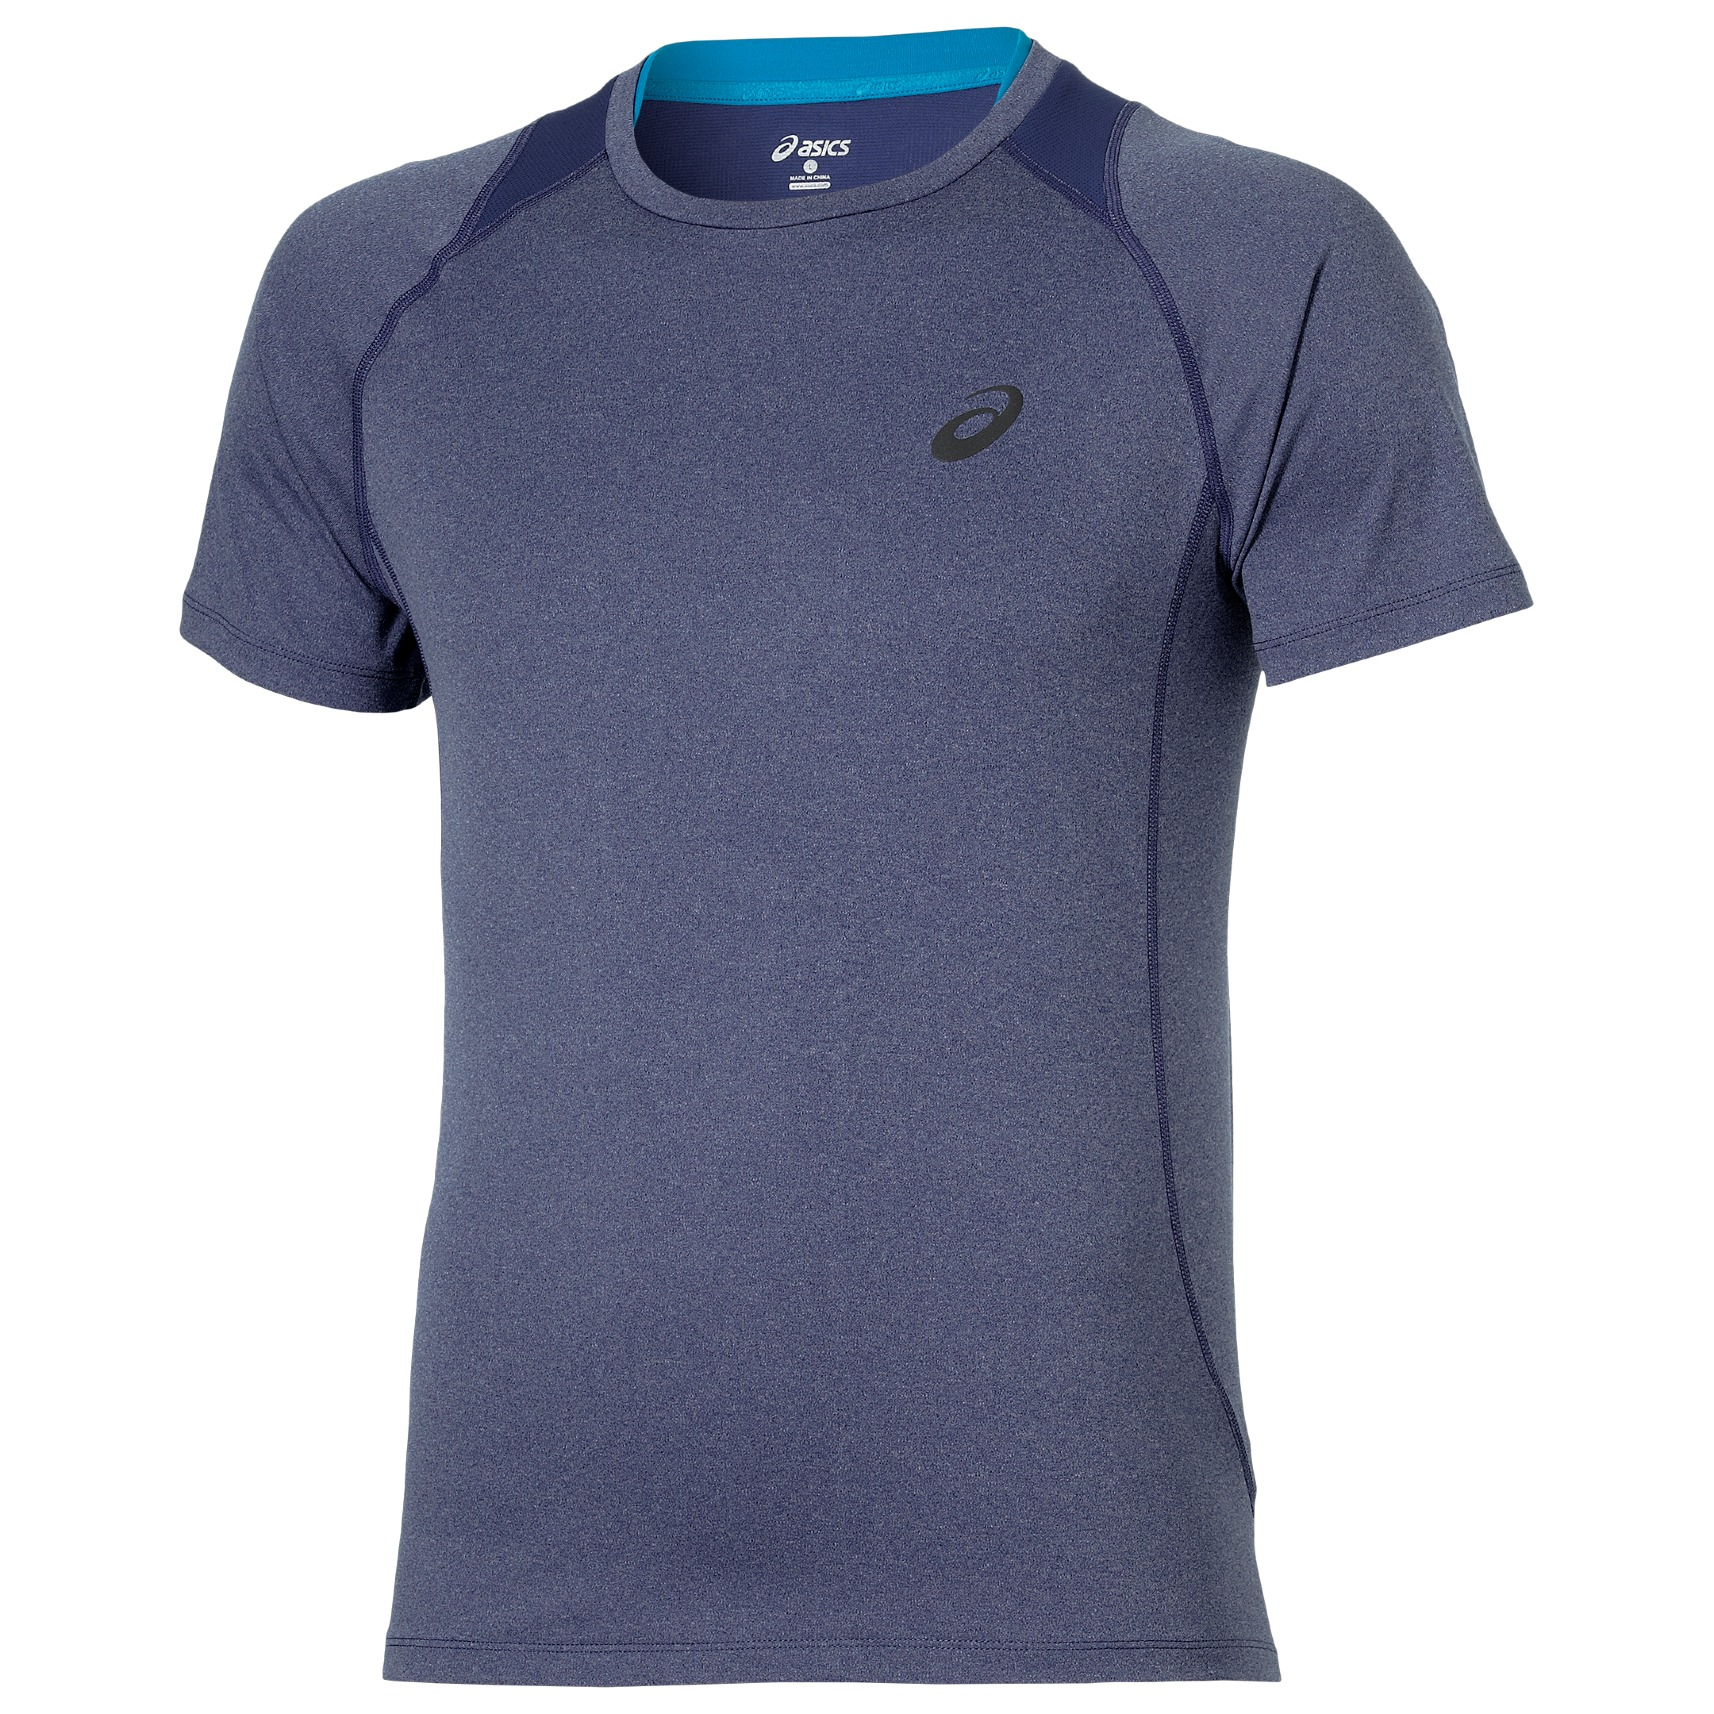 Asics Stride short-sleeve running top